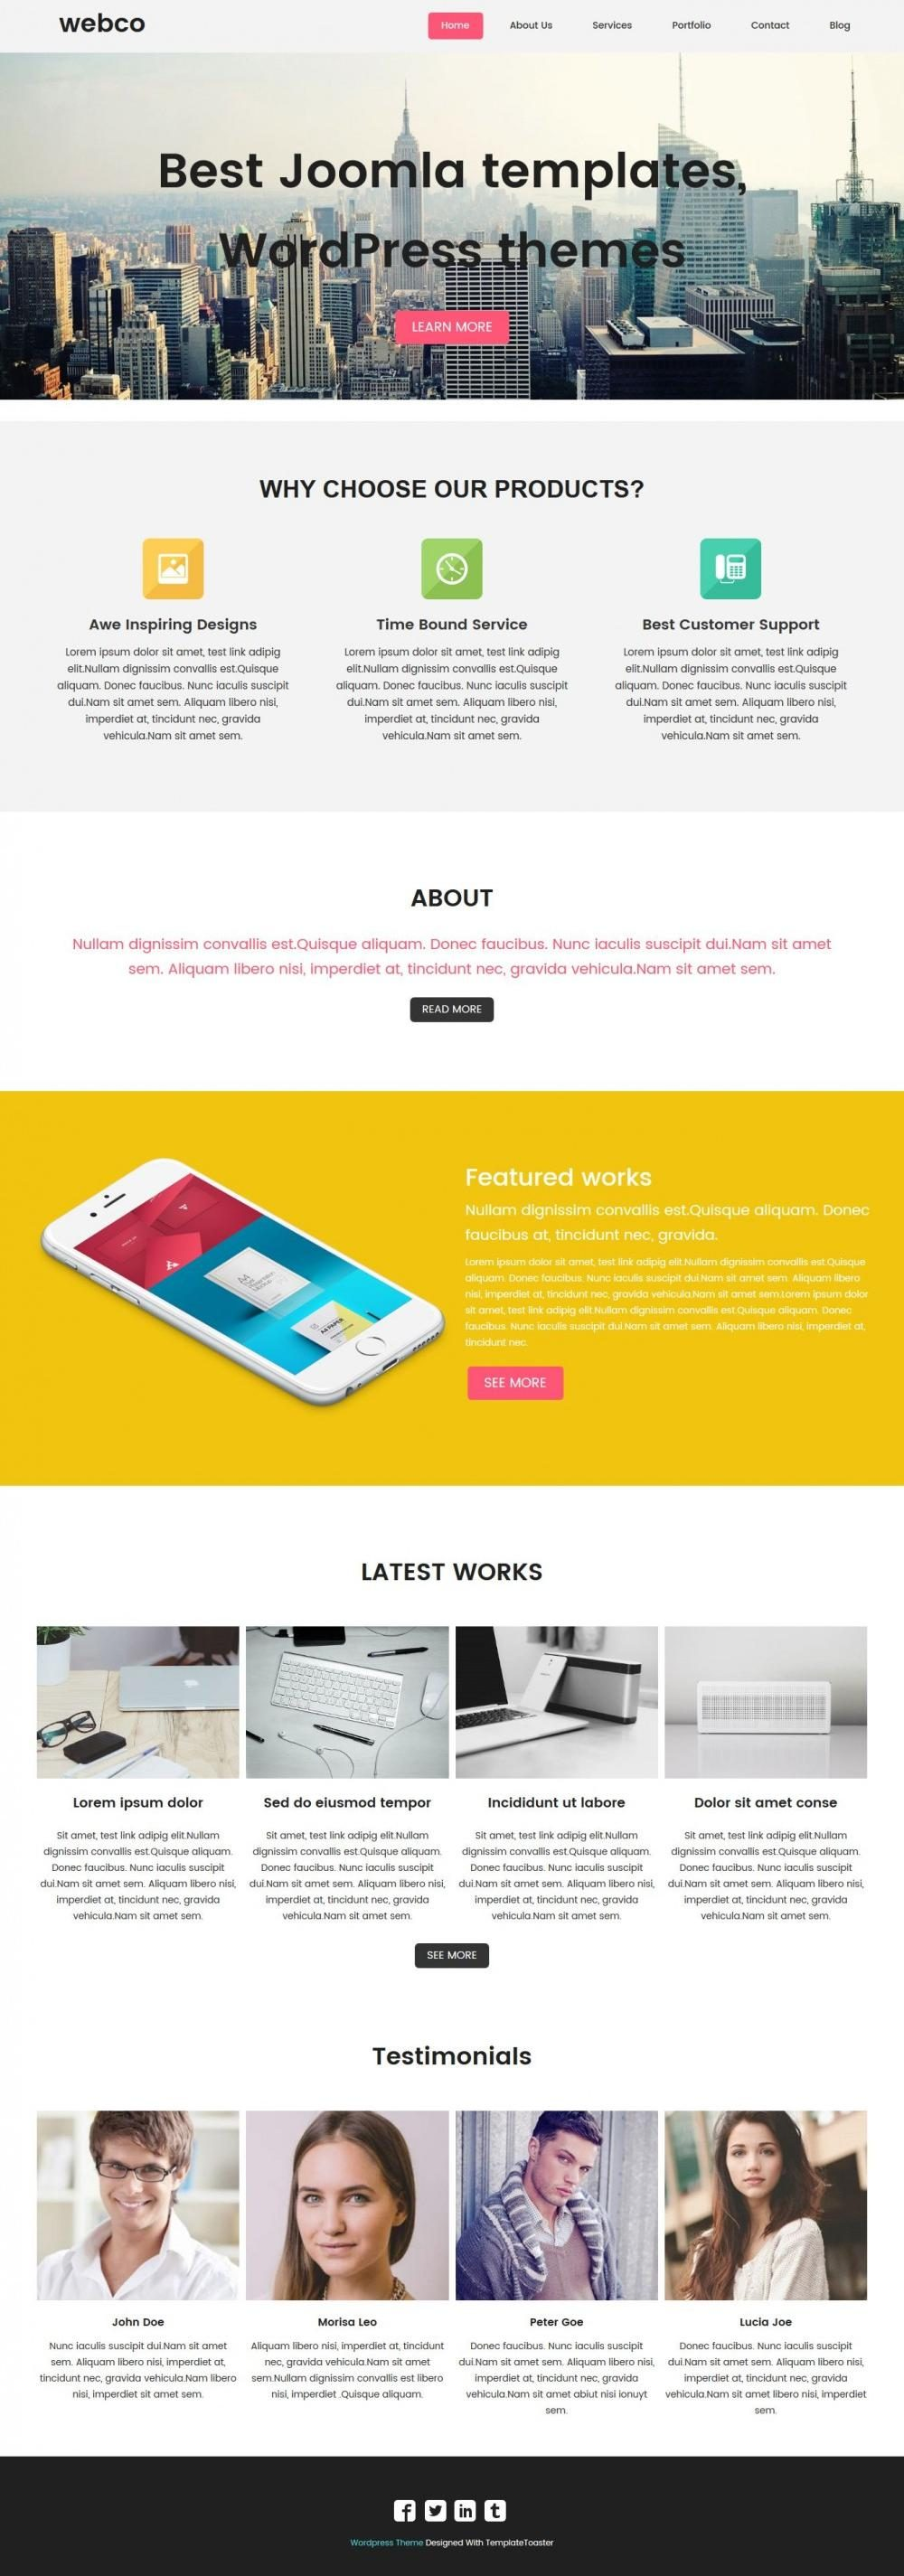 Webco Web Design Agencies HTML Template